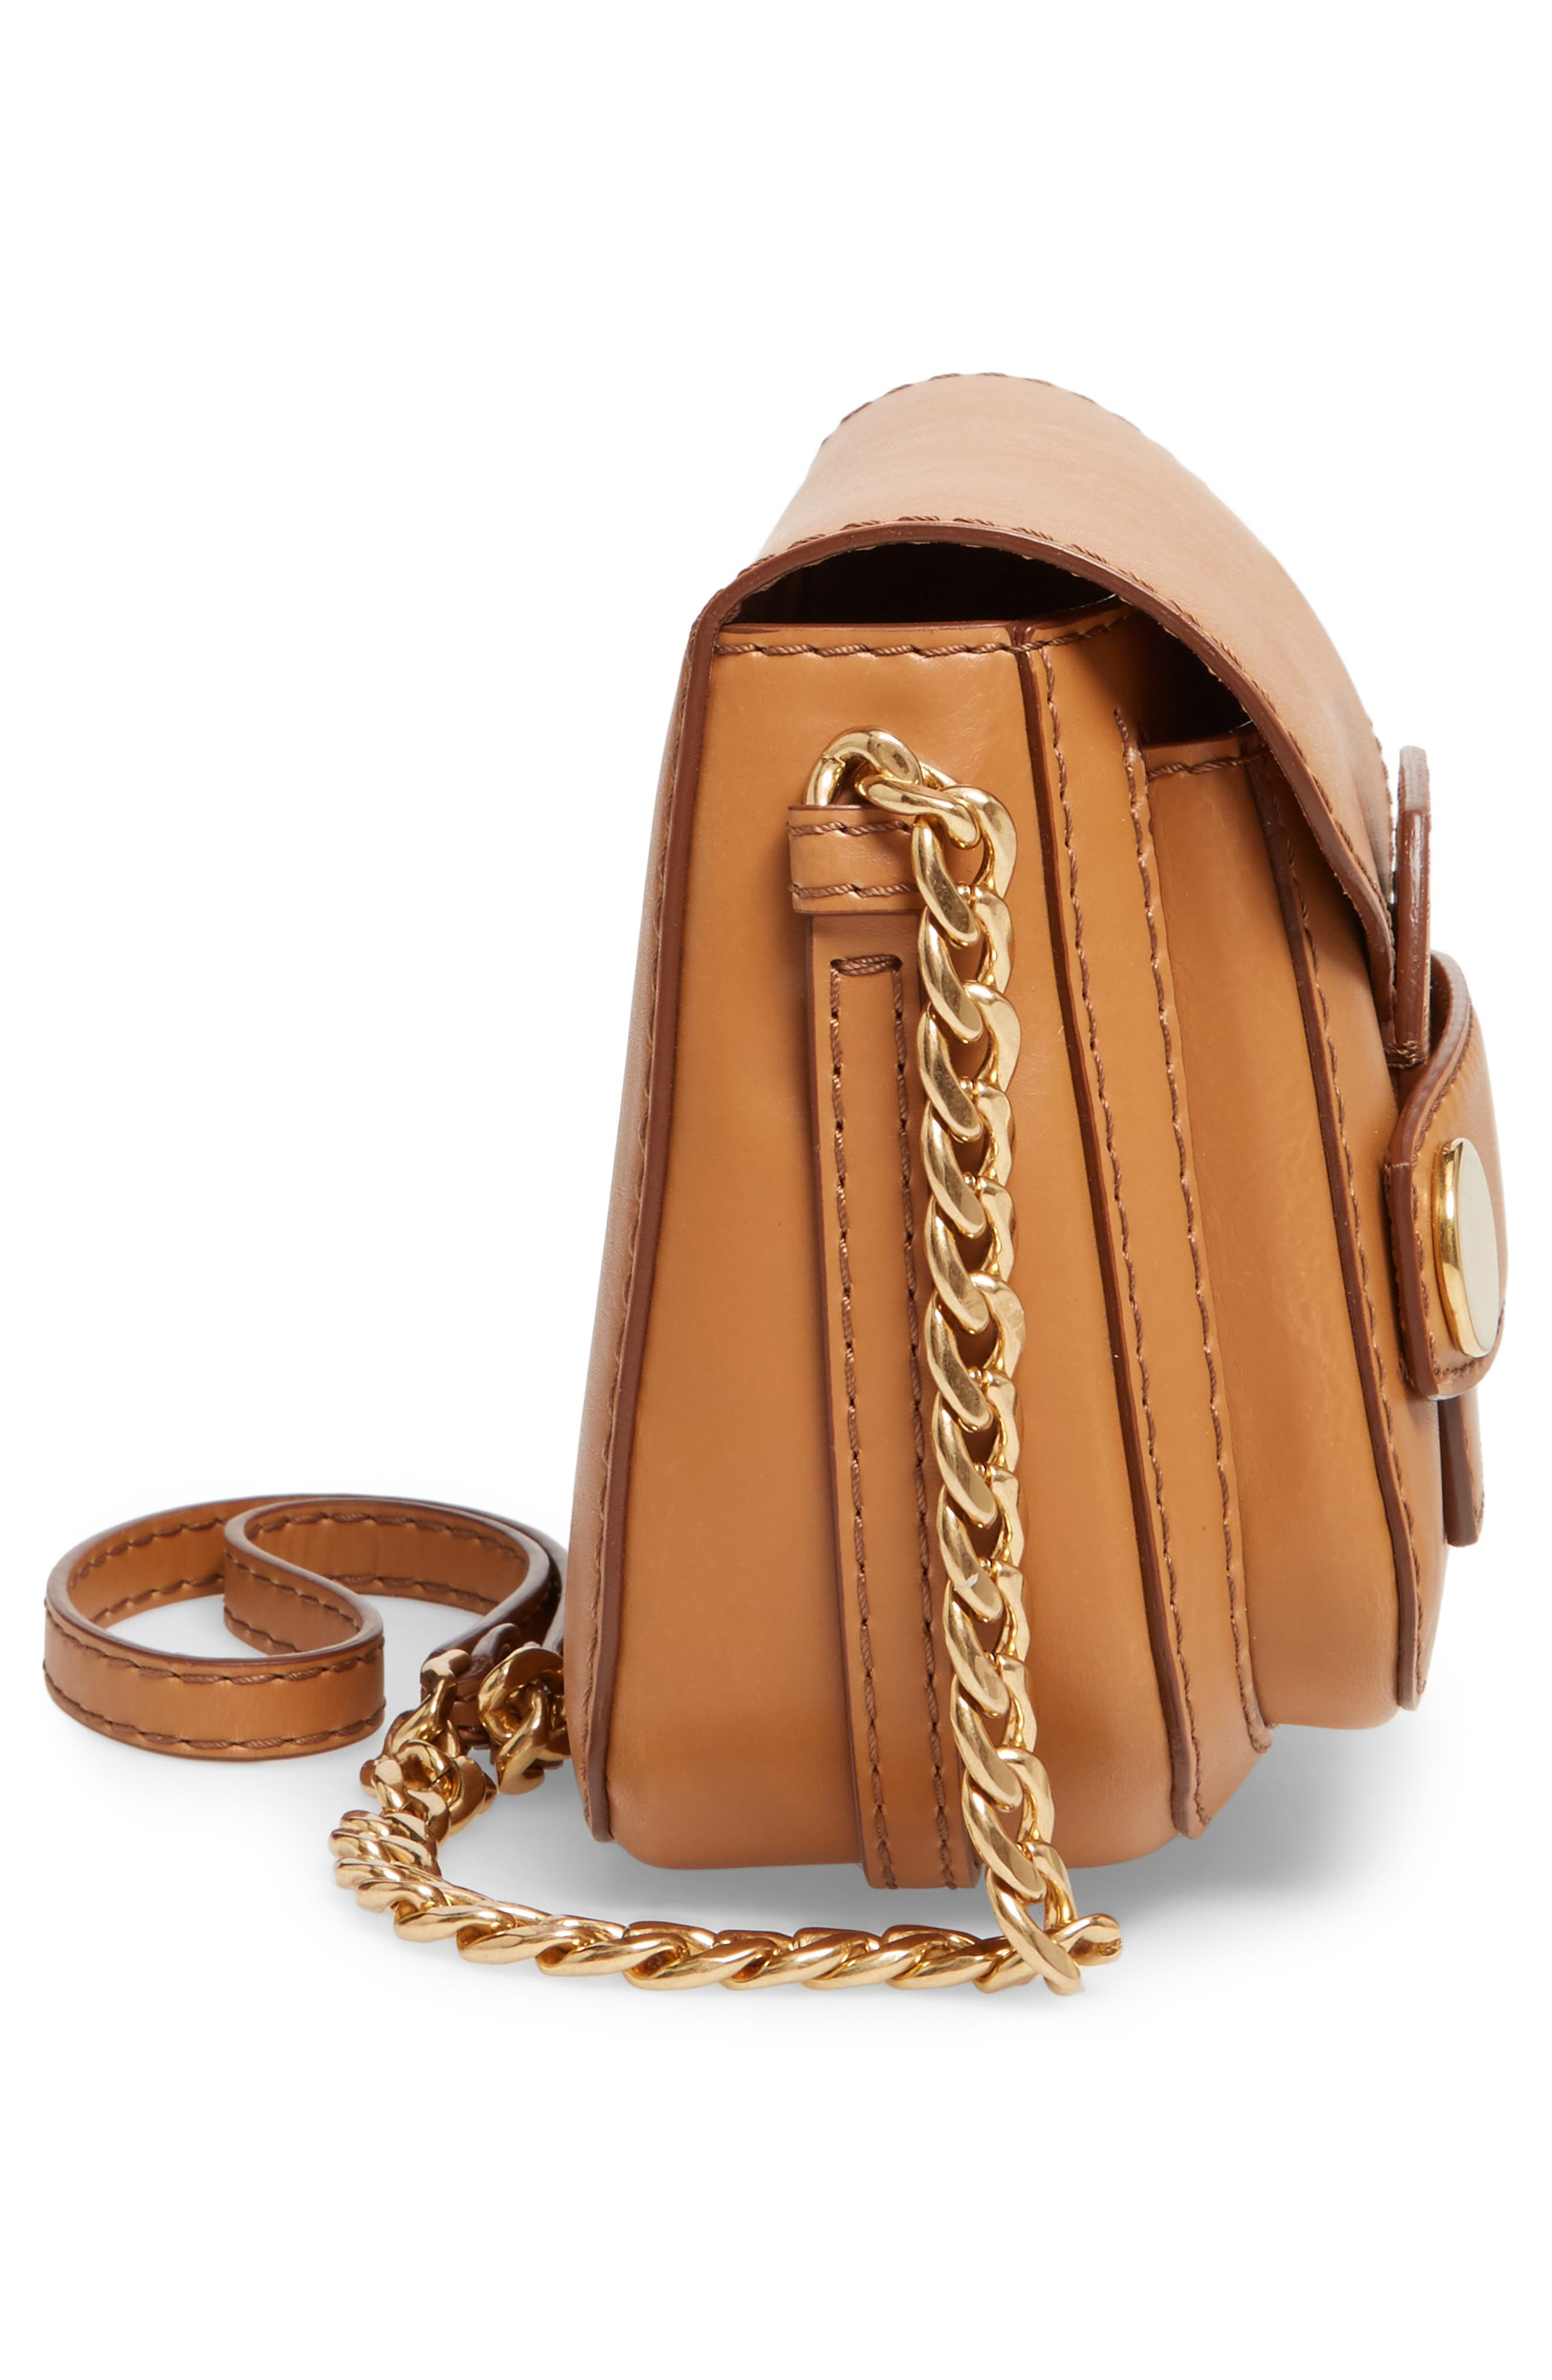 Textured Faux Leather Crossbody Bag,                             Alternate thumbnail 5, color,                             Camel